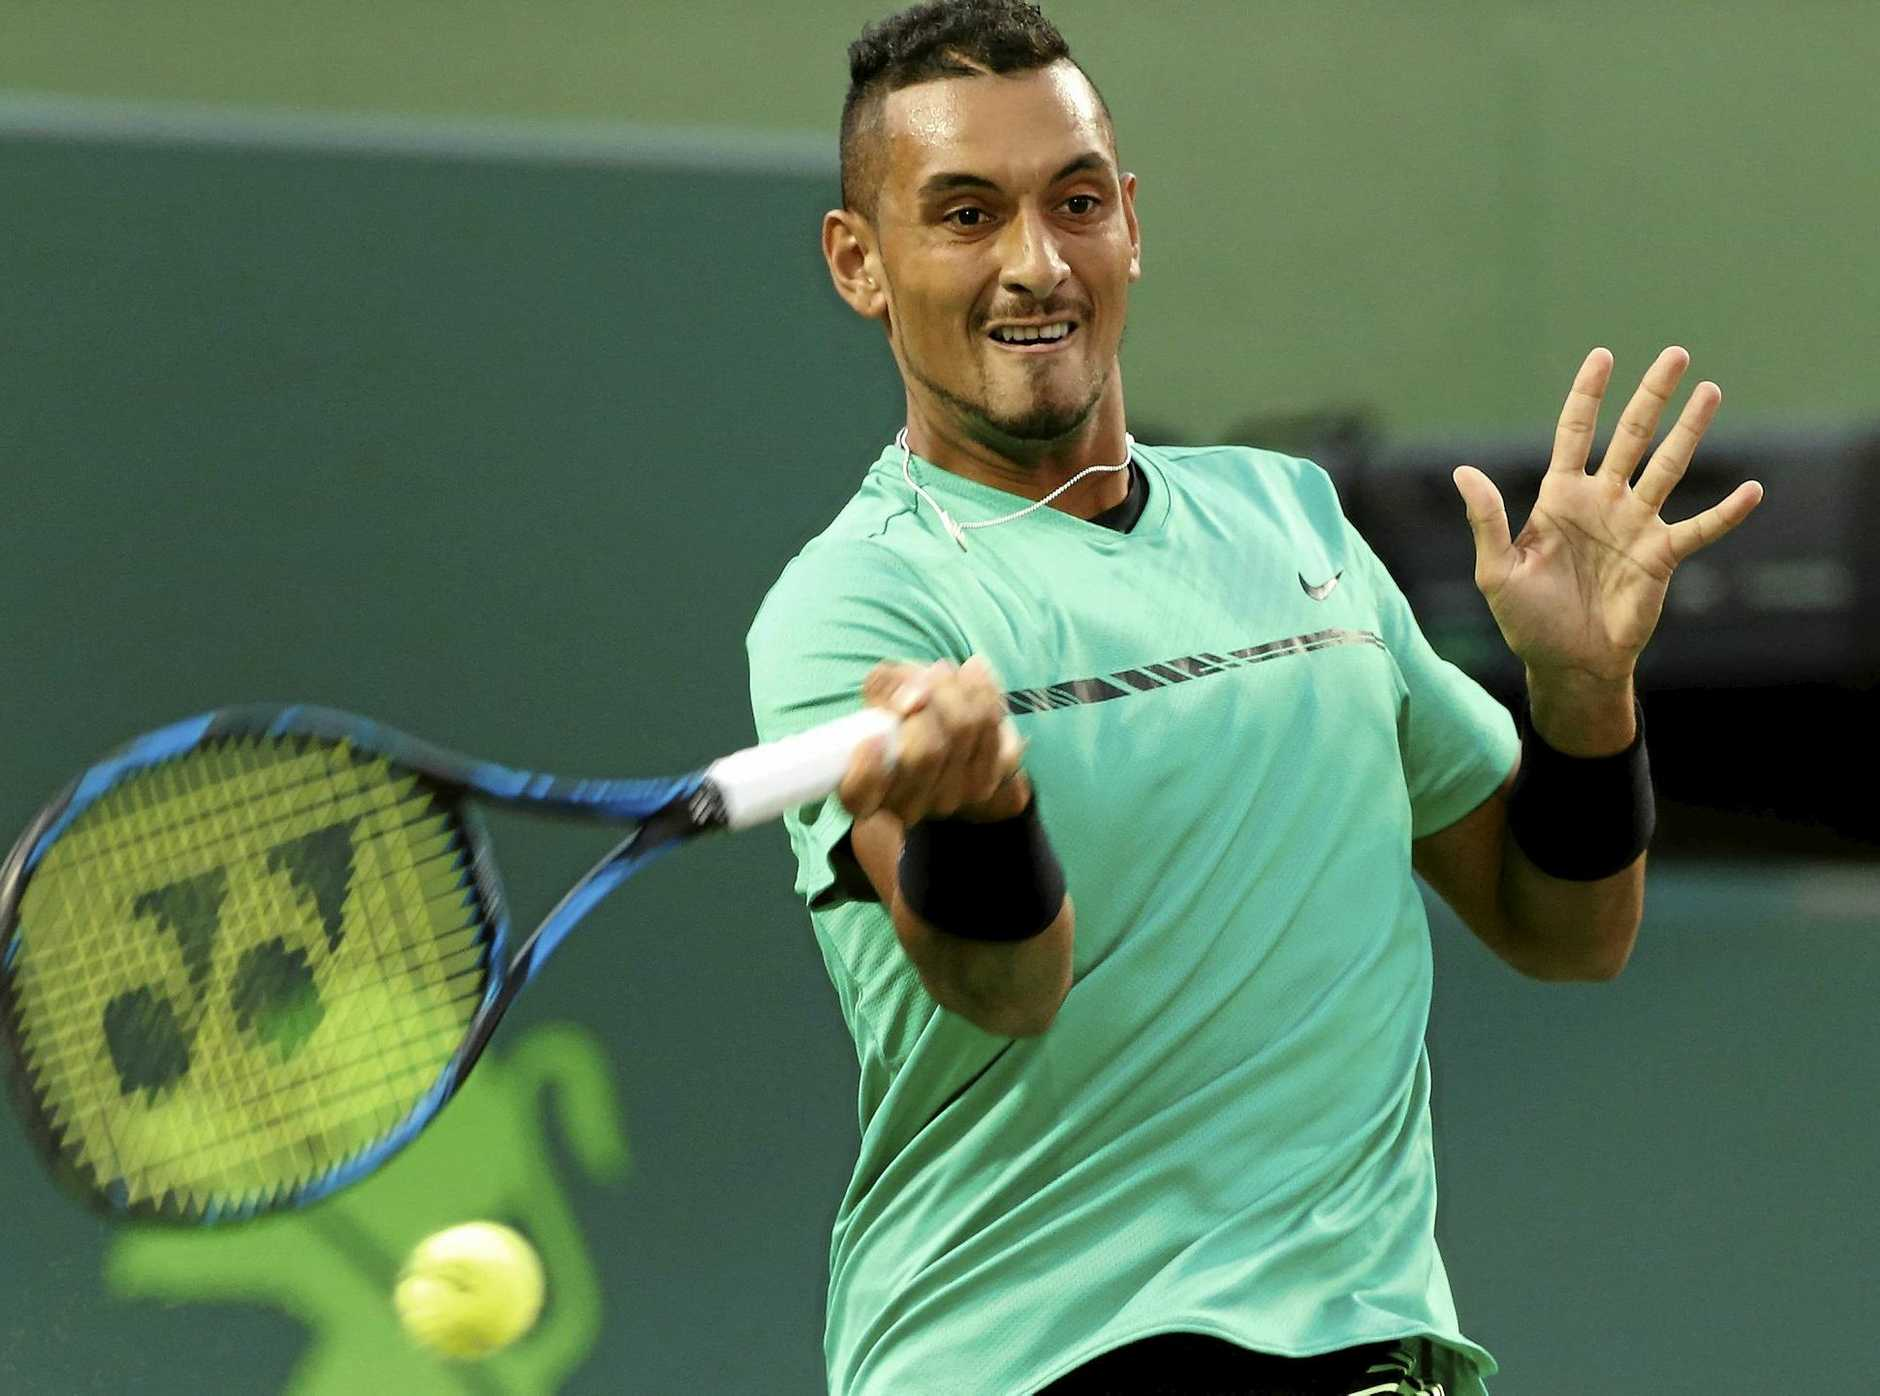 Nick Kyrgios of Australia in action against Alexander Zverev of Germany at the Miami Open.